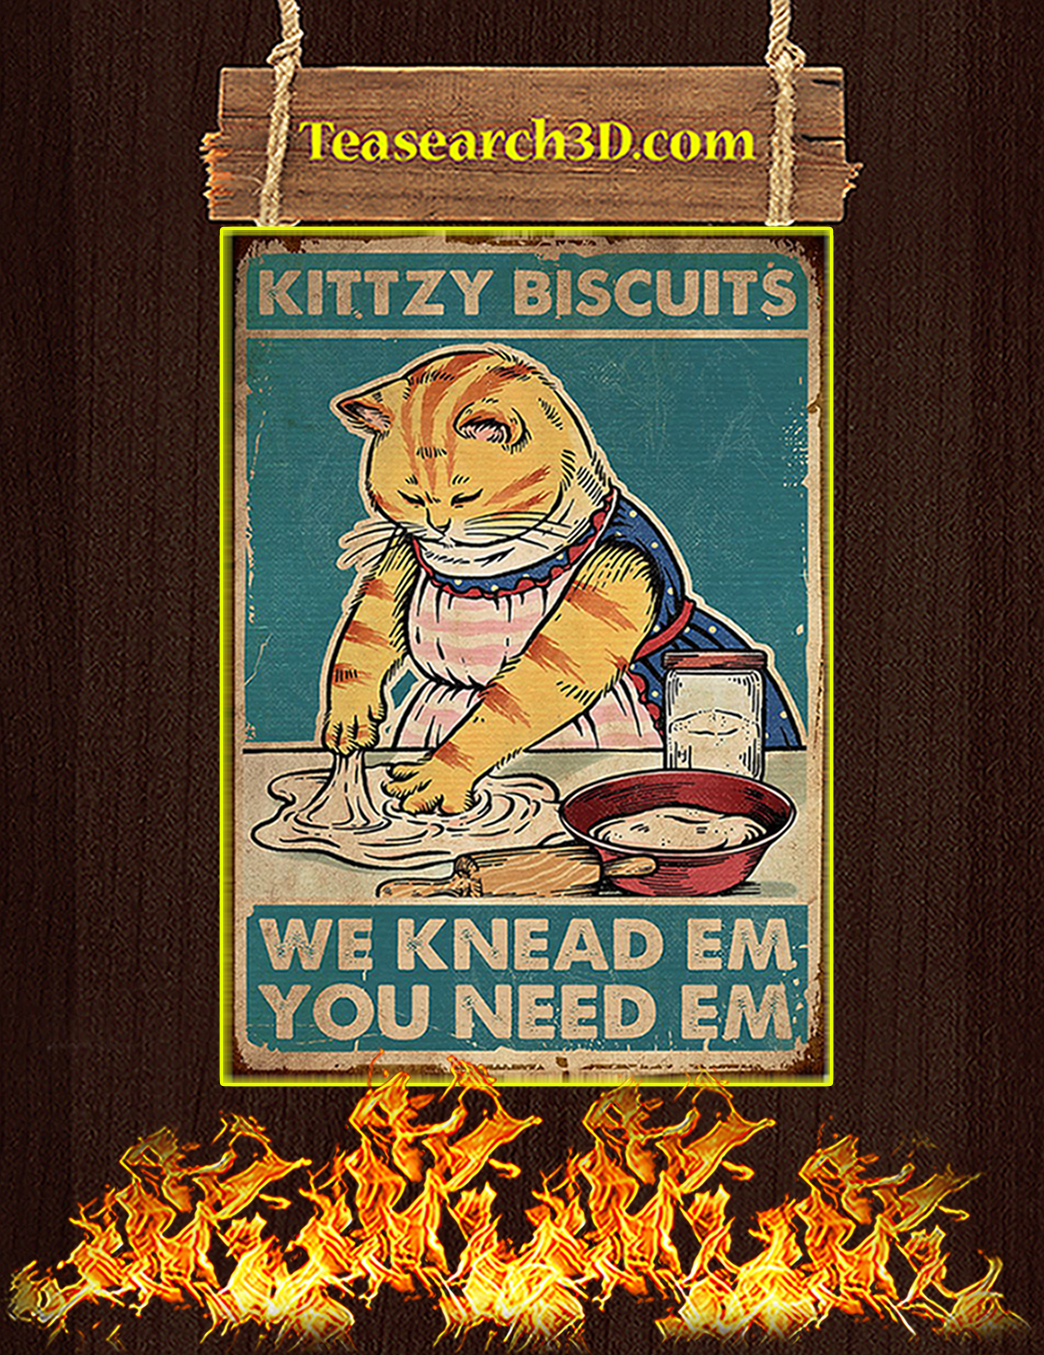 Kittzy Biscuits We Knead Em You Need Em Poster A1